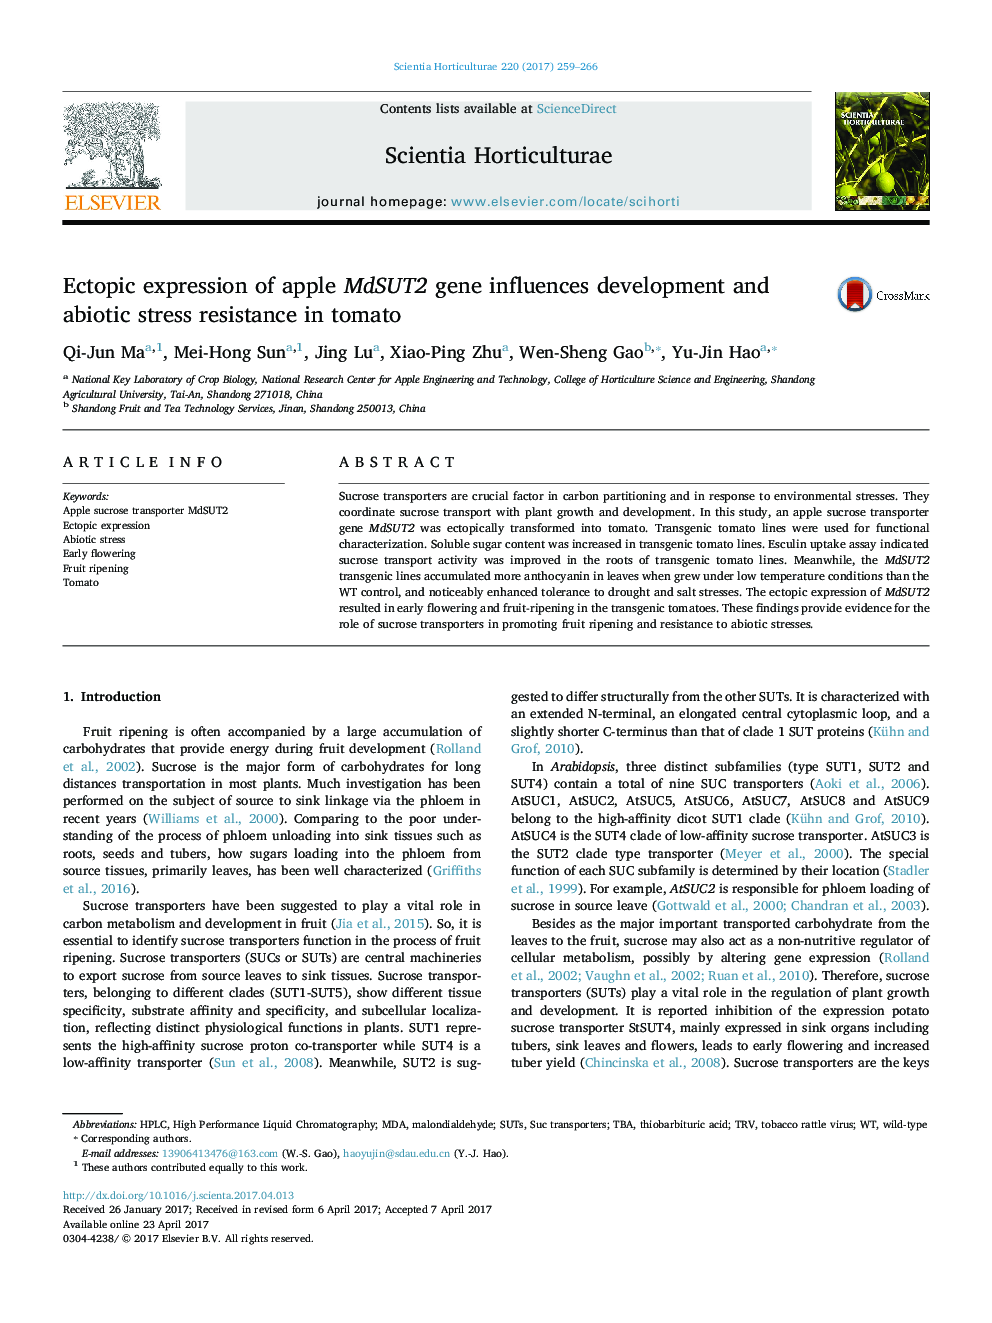 Ectopic expression of apple MdSUT2 gene influences development and abiotic stress resistance in tomato